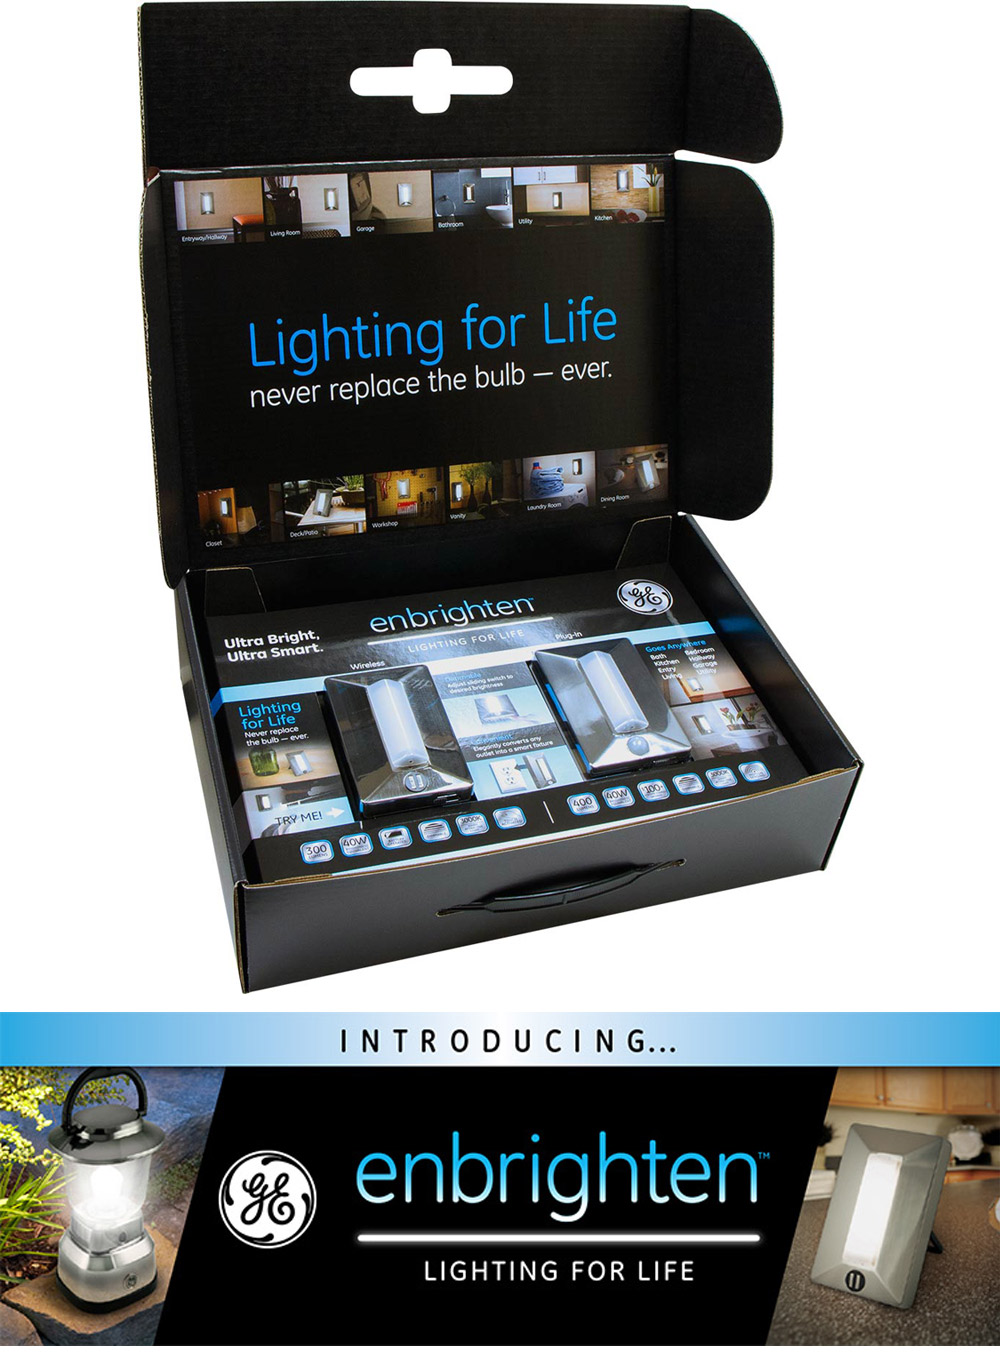 Enbrighten press kit / product release campaign